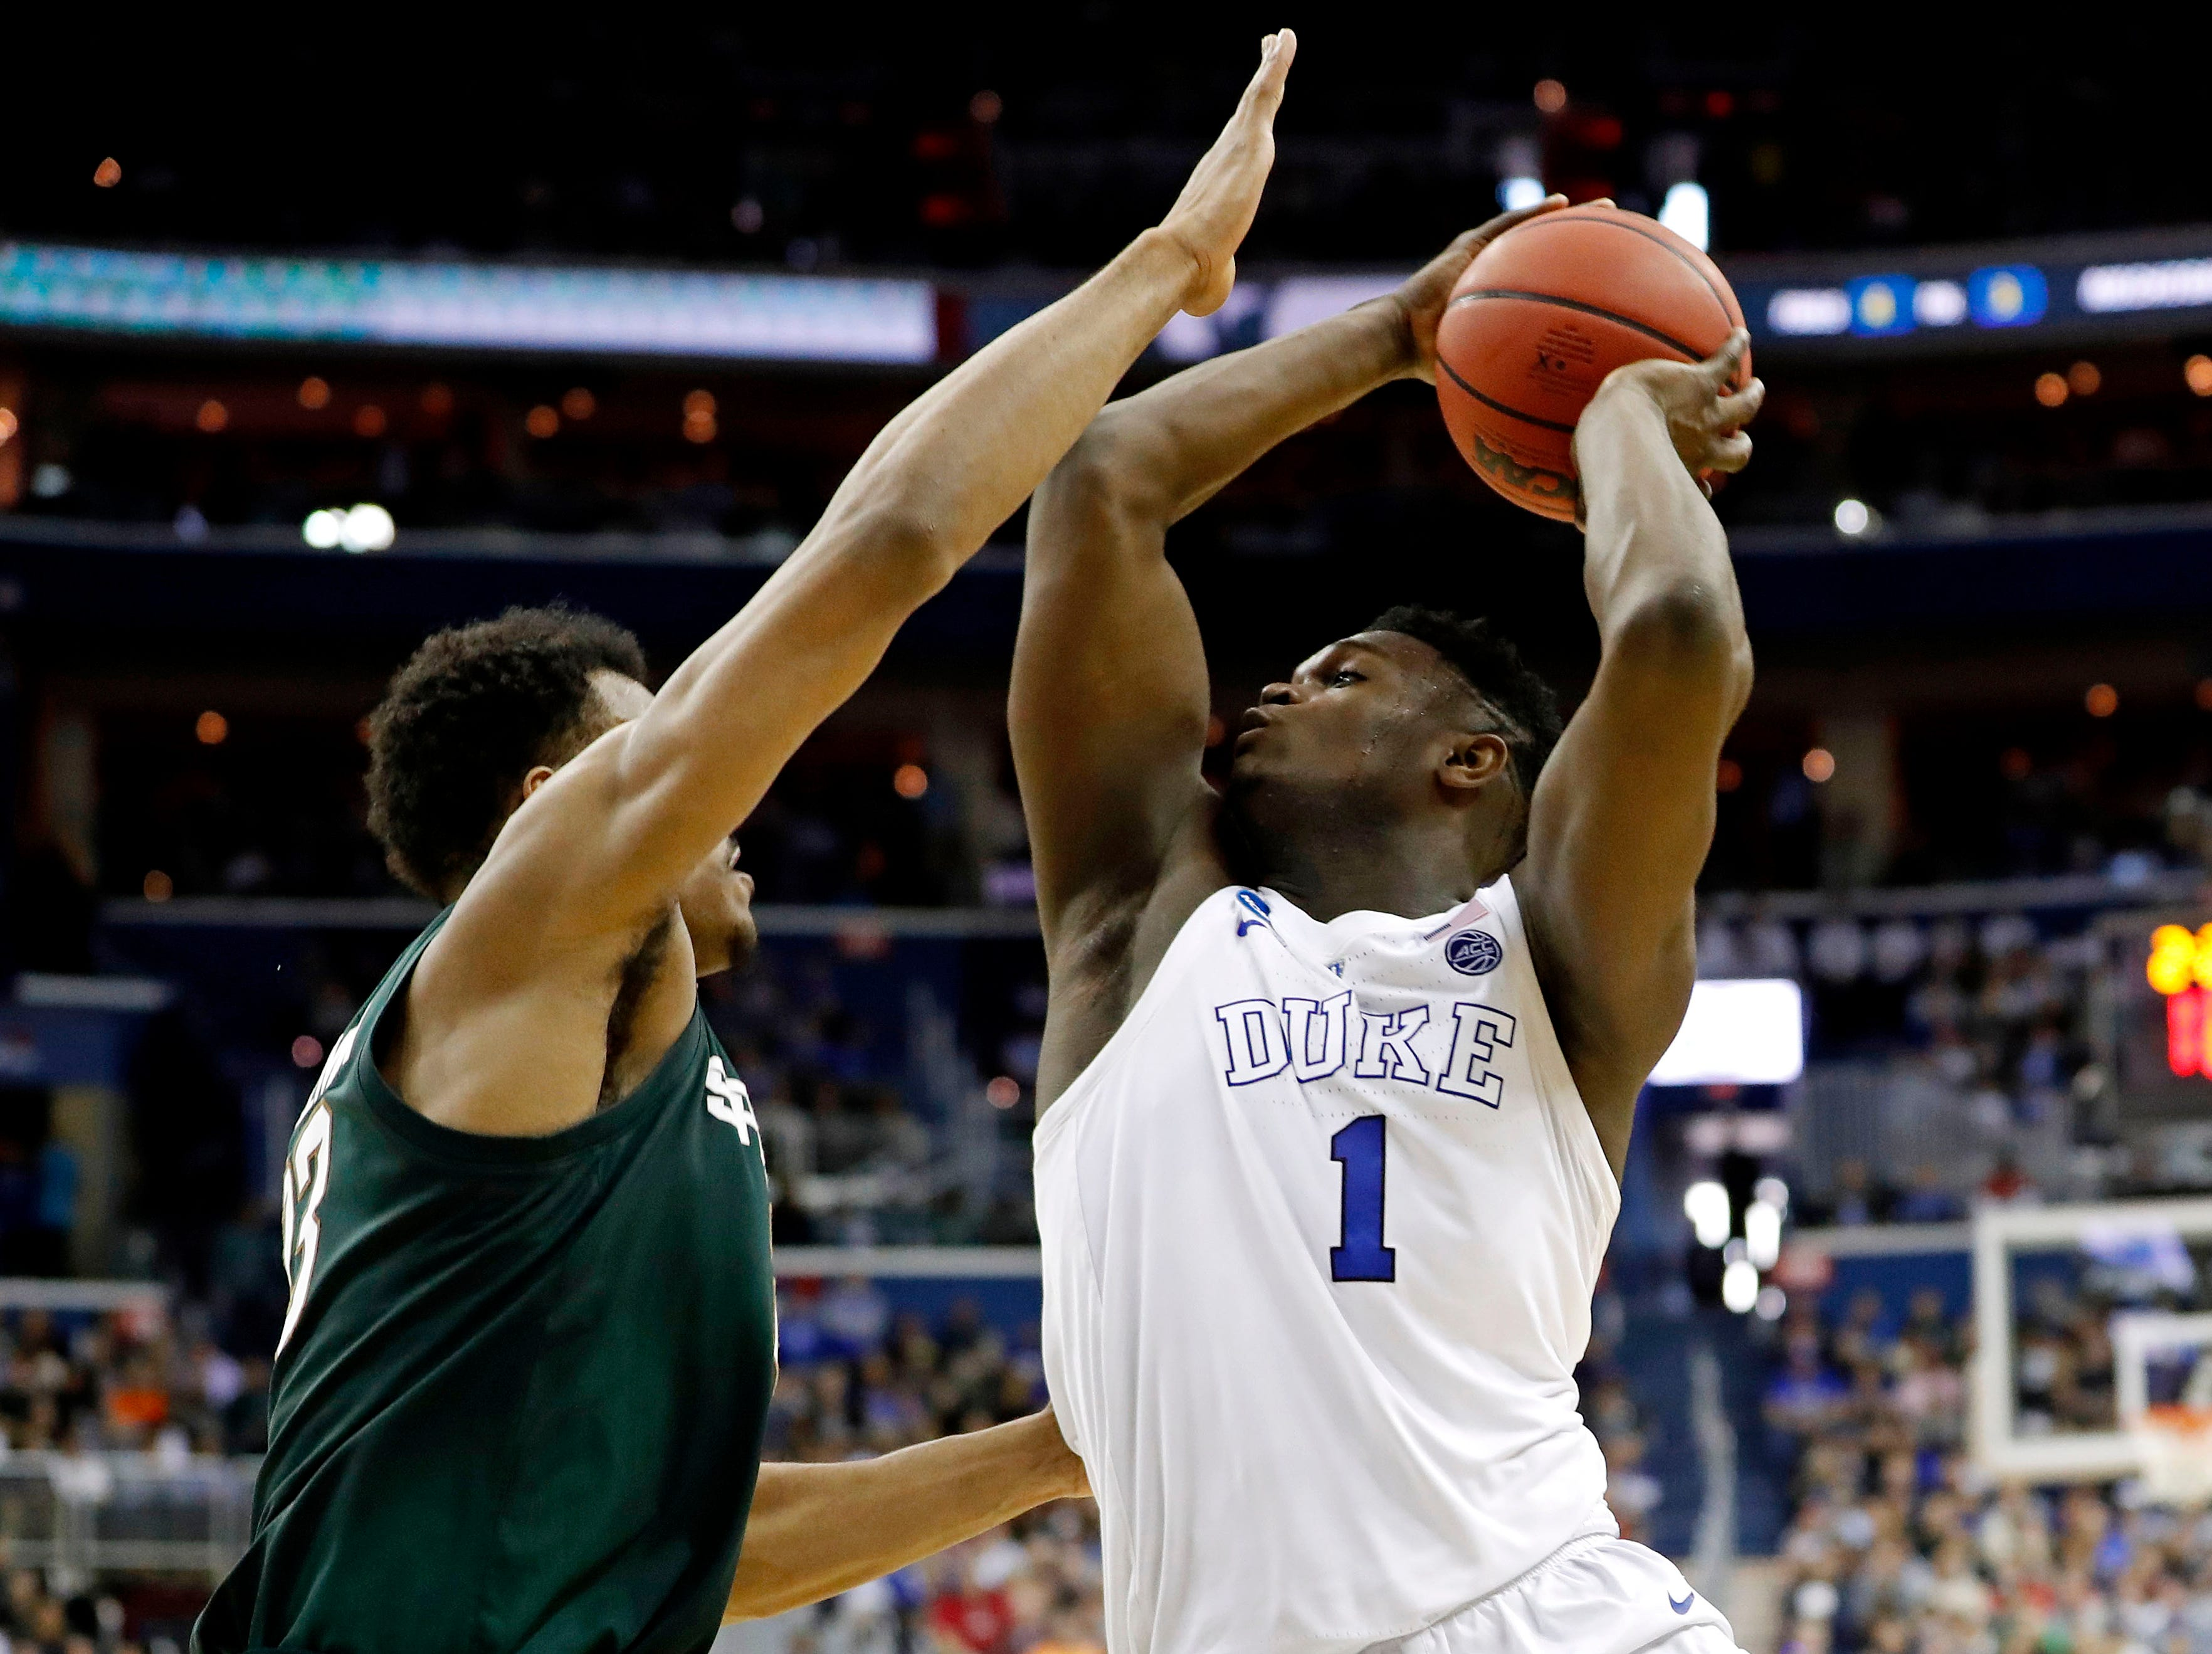 Duke Blue Devils forward Zion Williamson (1) drives to the basket against Michigan State Spartans forward Xavier Tillman (23) during the first half in the championship game of the east regional of the 2019 NCAA Tournament at Capital One Arena.